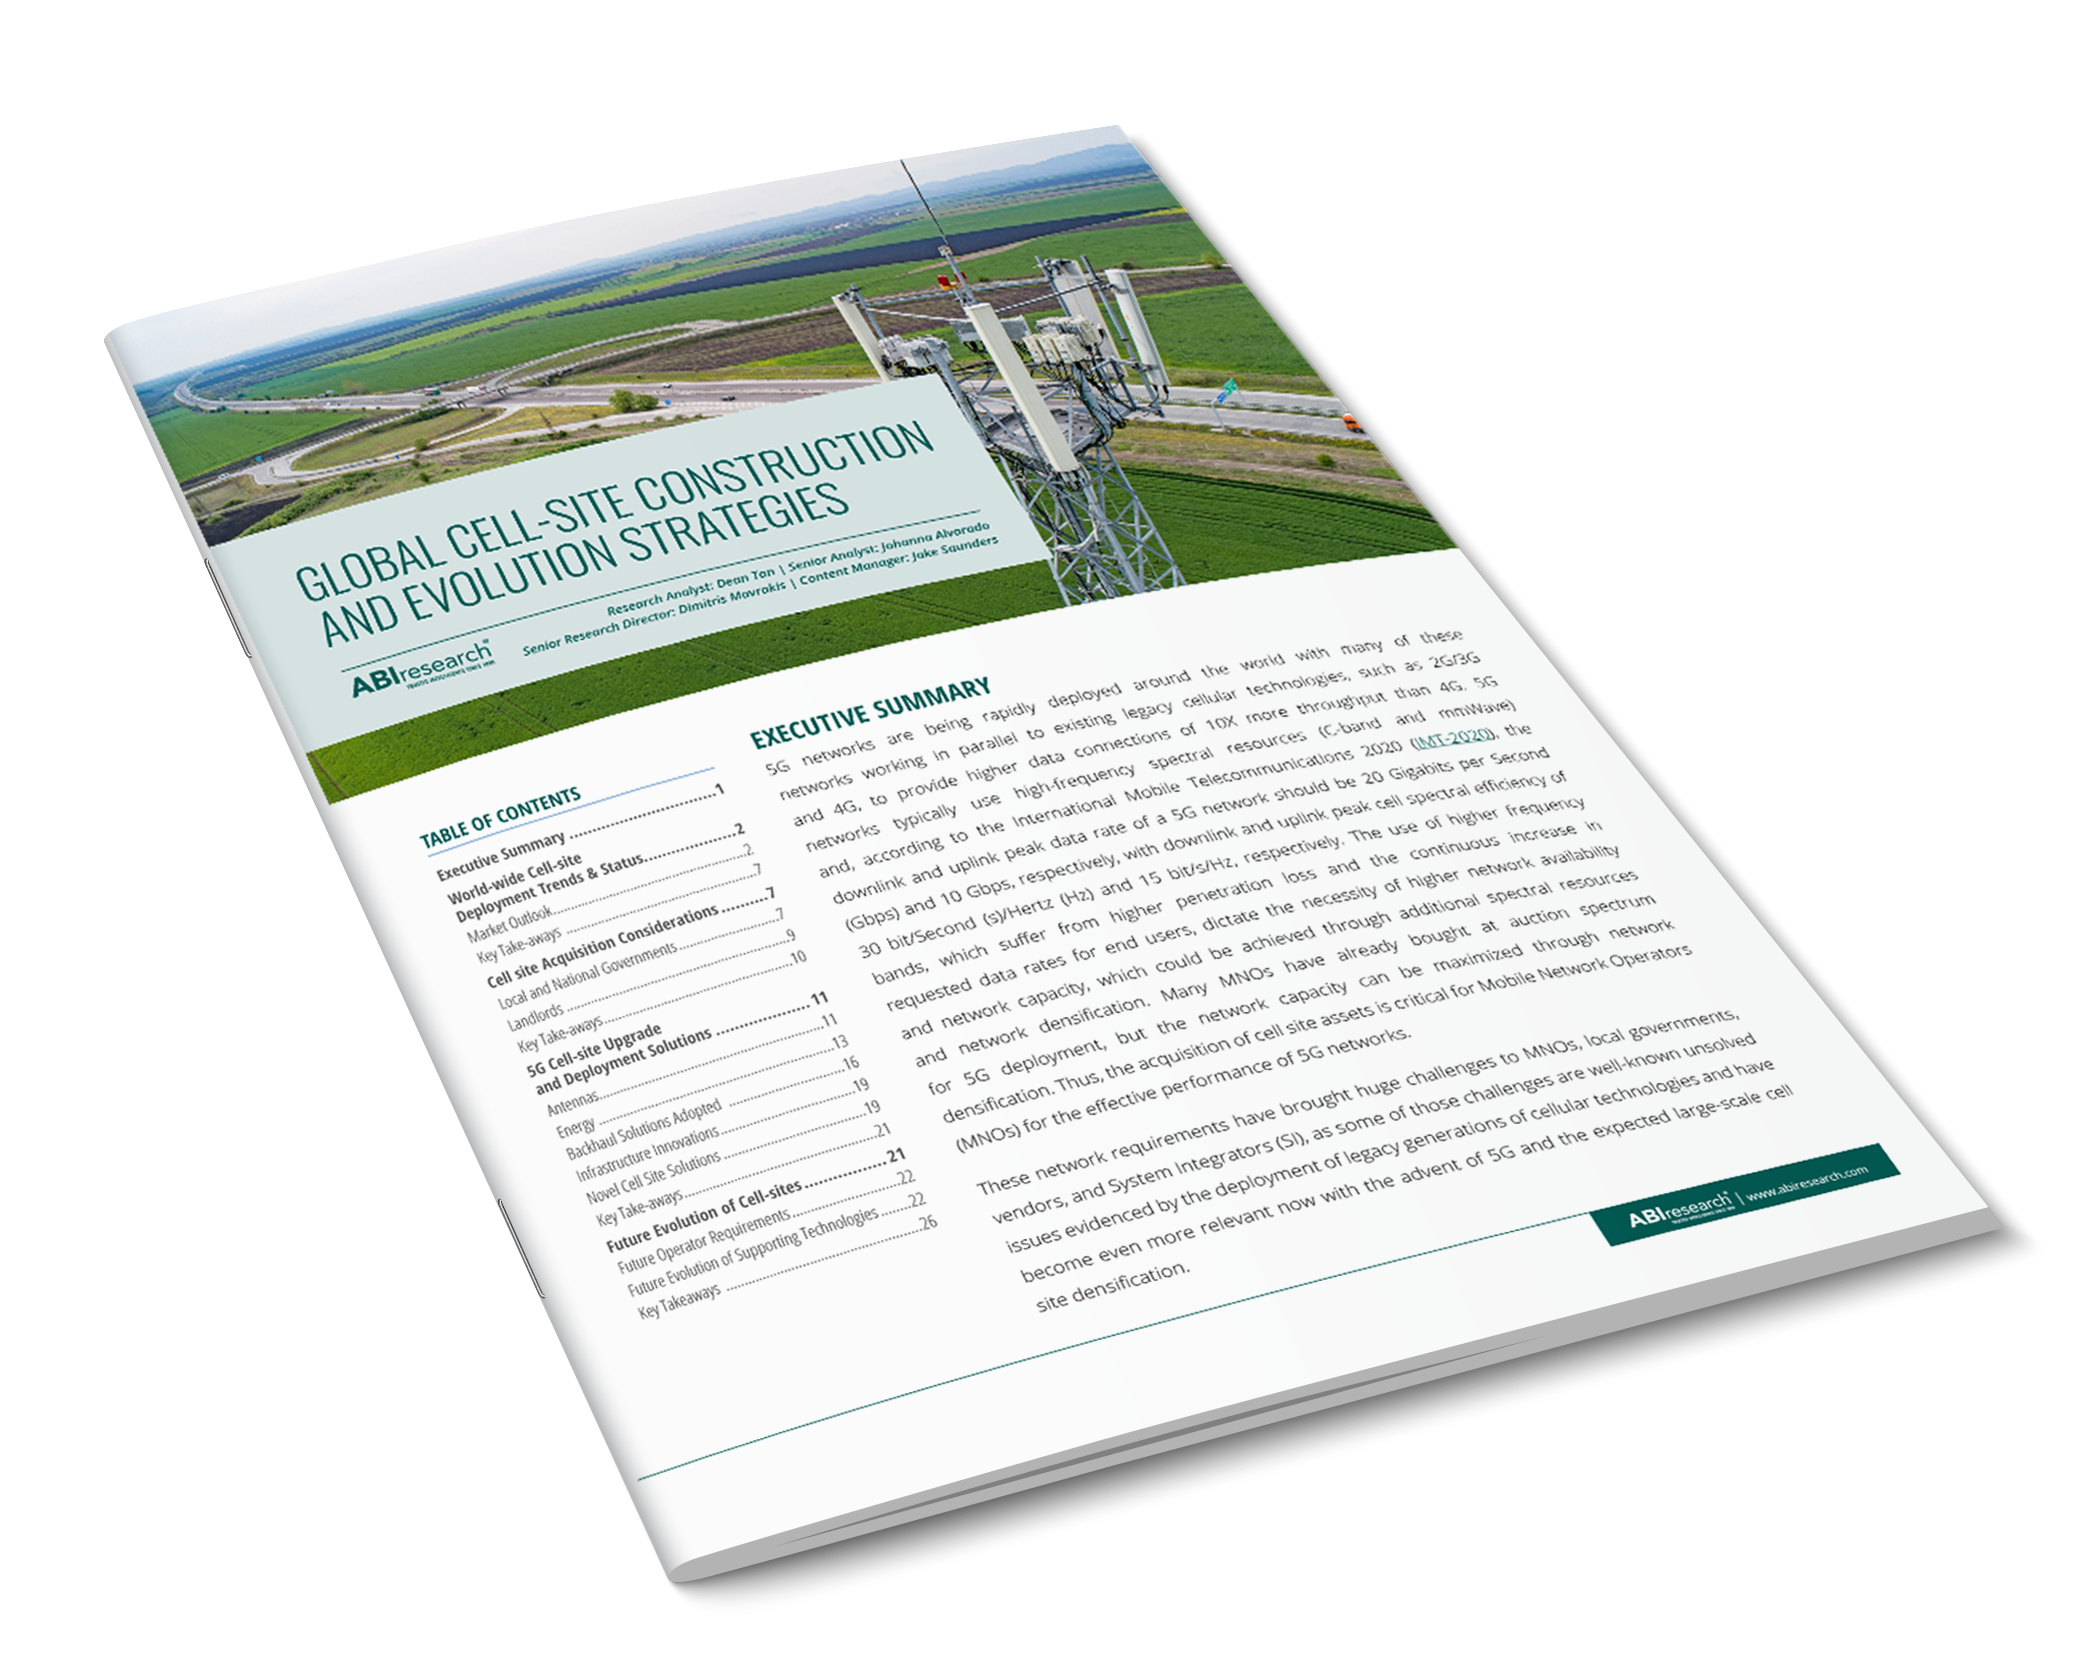 Global Cell-Site Construction And Evolution Strategies